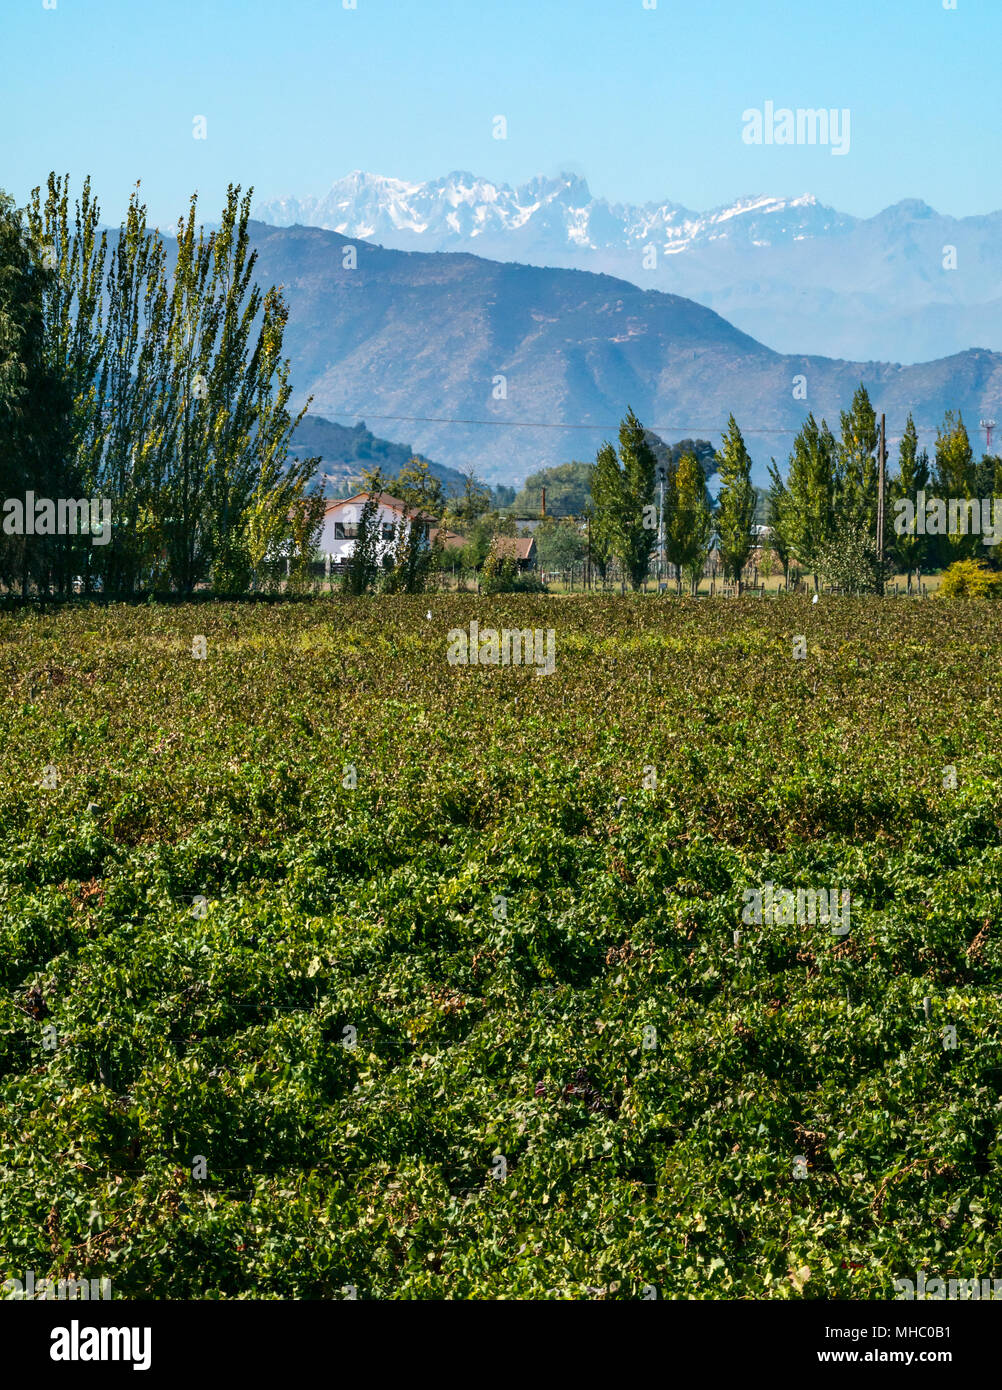 view-across-vineyard-to-foothills-and-th